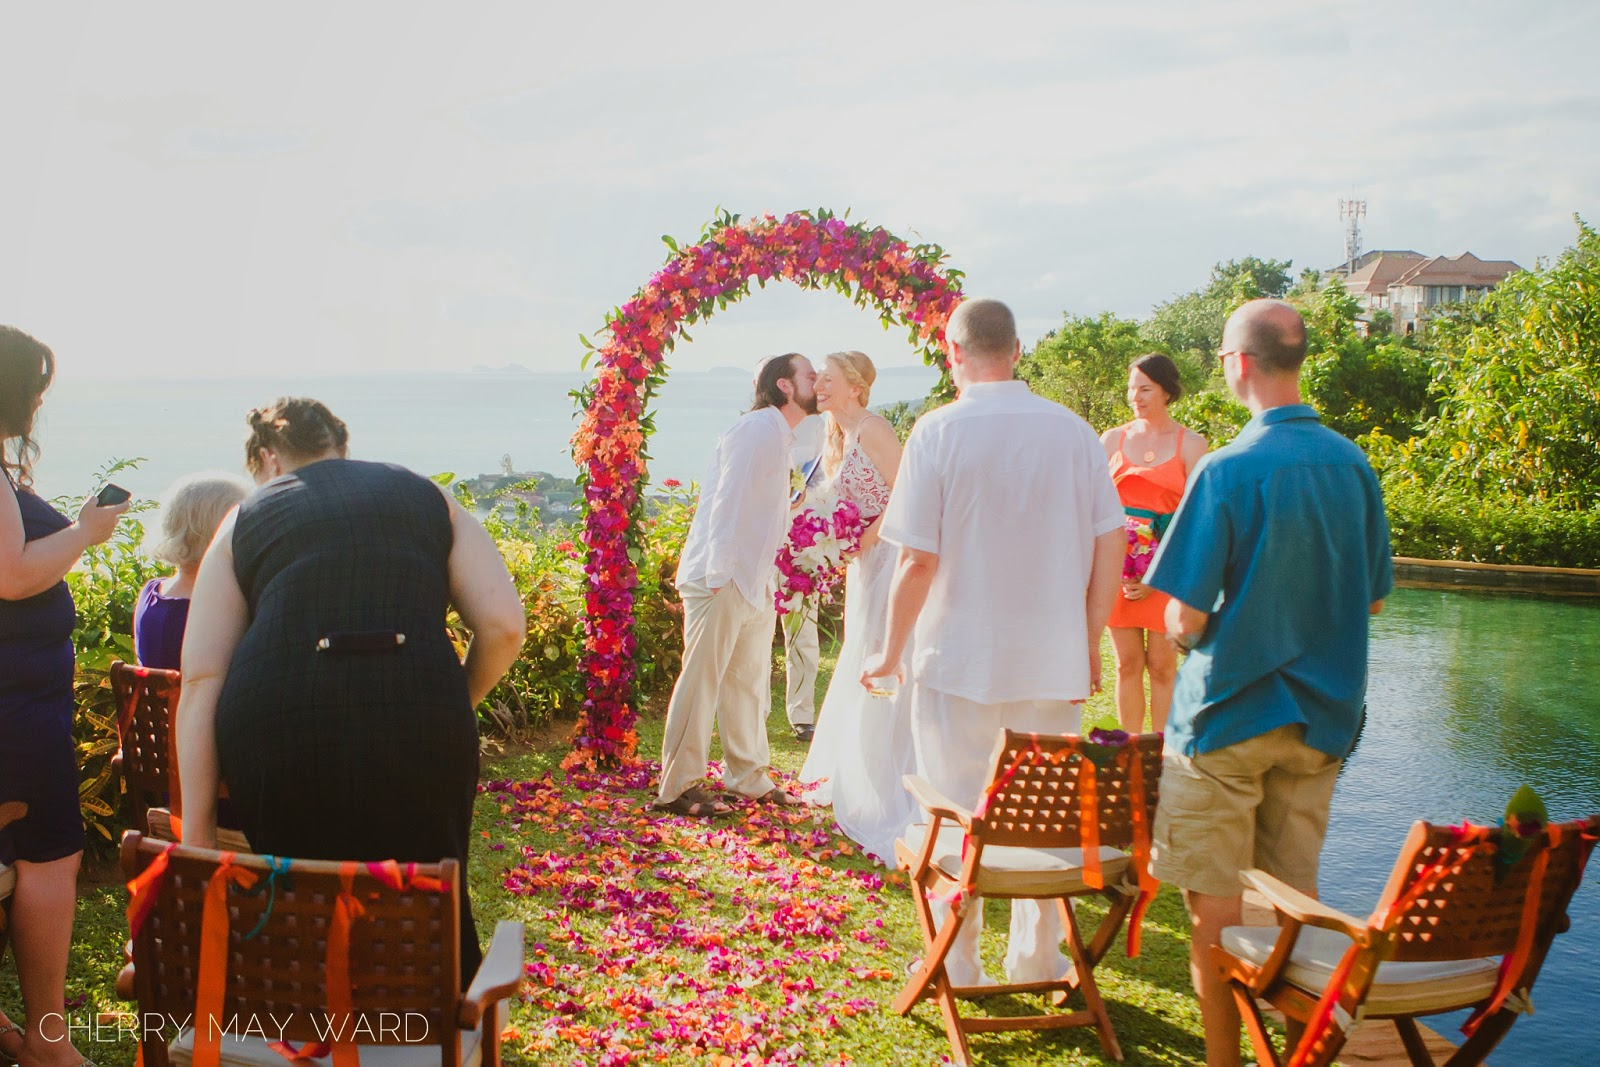 Koh Samui intimate wedding ceremony, bride and groom kiss on the cheek, Thailand wedding ceremony, small wedding in Thailand, wedding with a view, beautiful destination wedding with a view